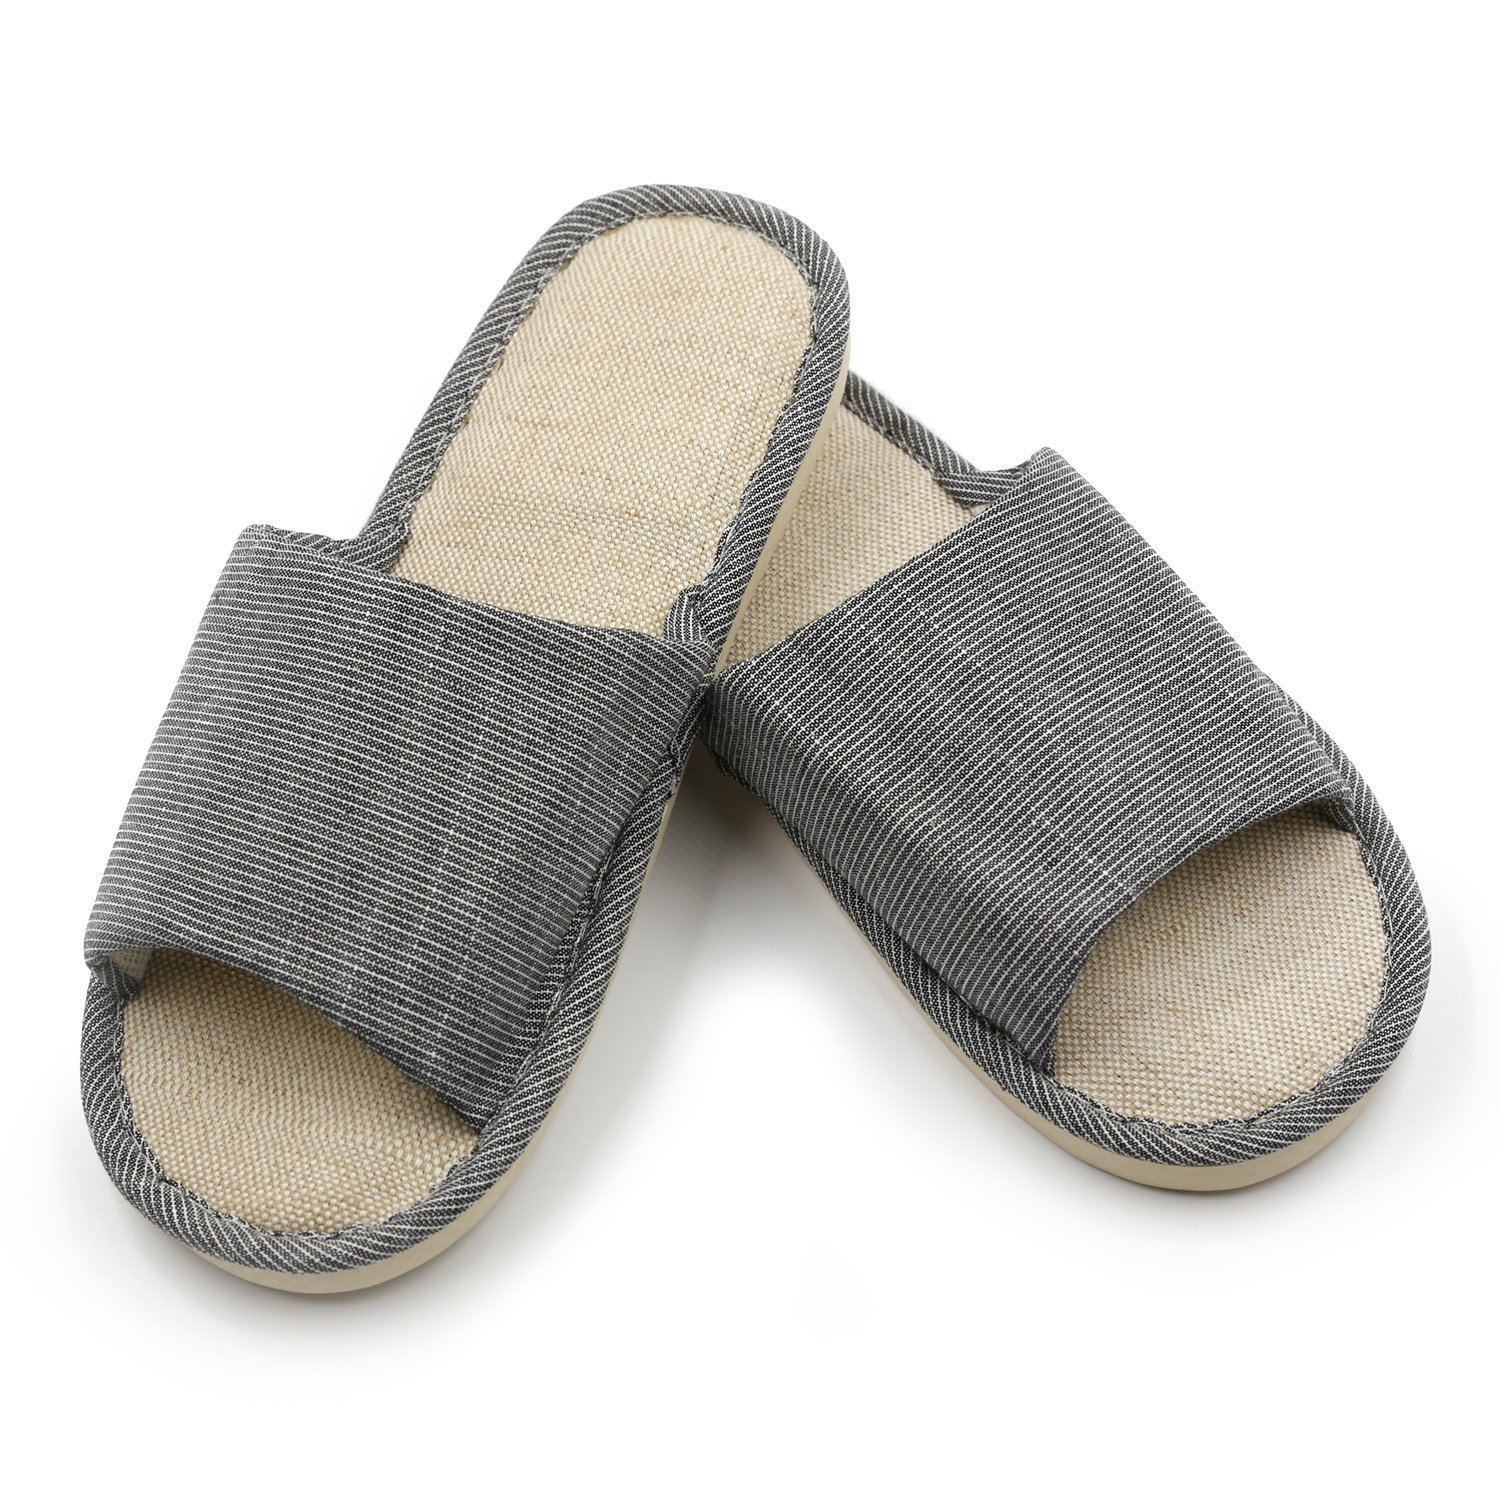 acd0d99bcd4 Get Quotations · Topgalaxy.Z Cotton Flax Casual House indoor Slippers  Open-toes Thick-sole Striped